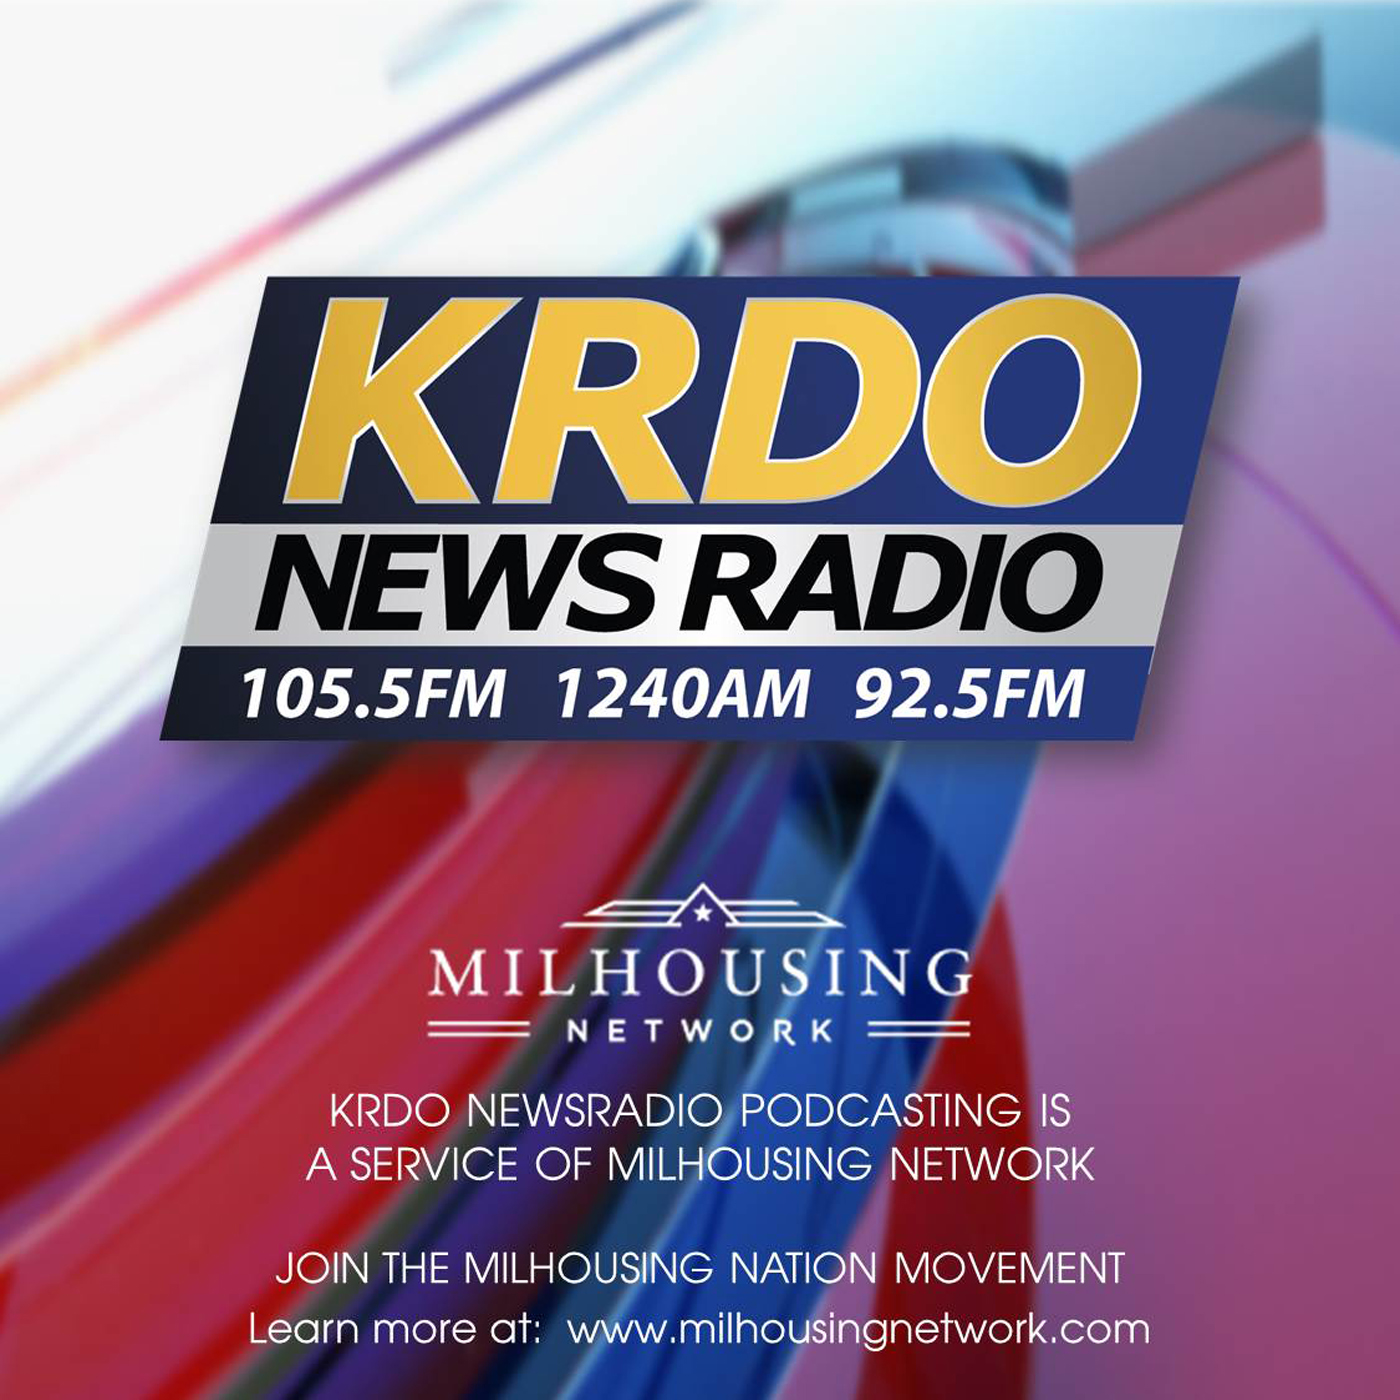 KRDO Noon News - Move for Hunger - Gina Caughey - July 31, 2018